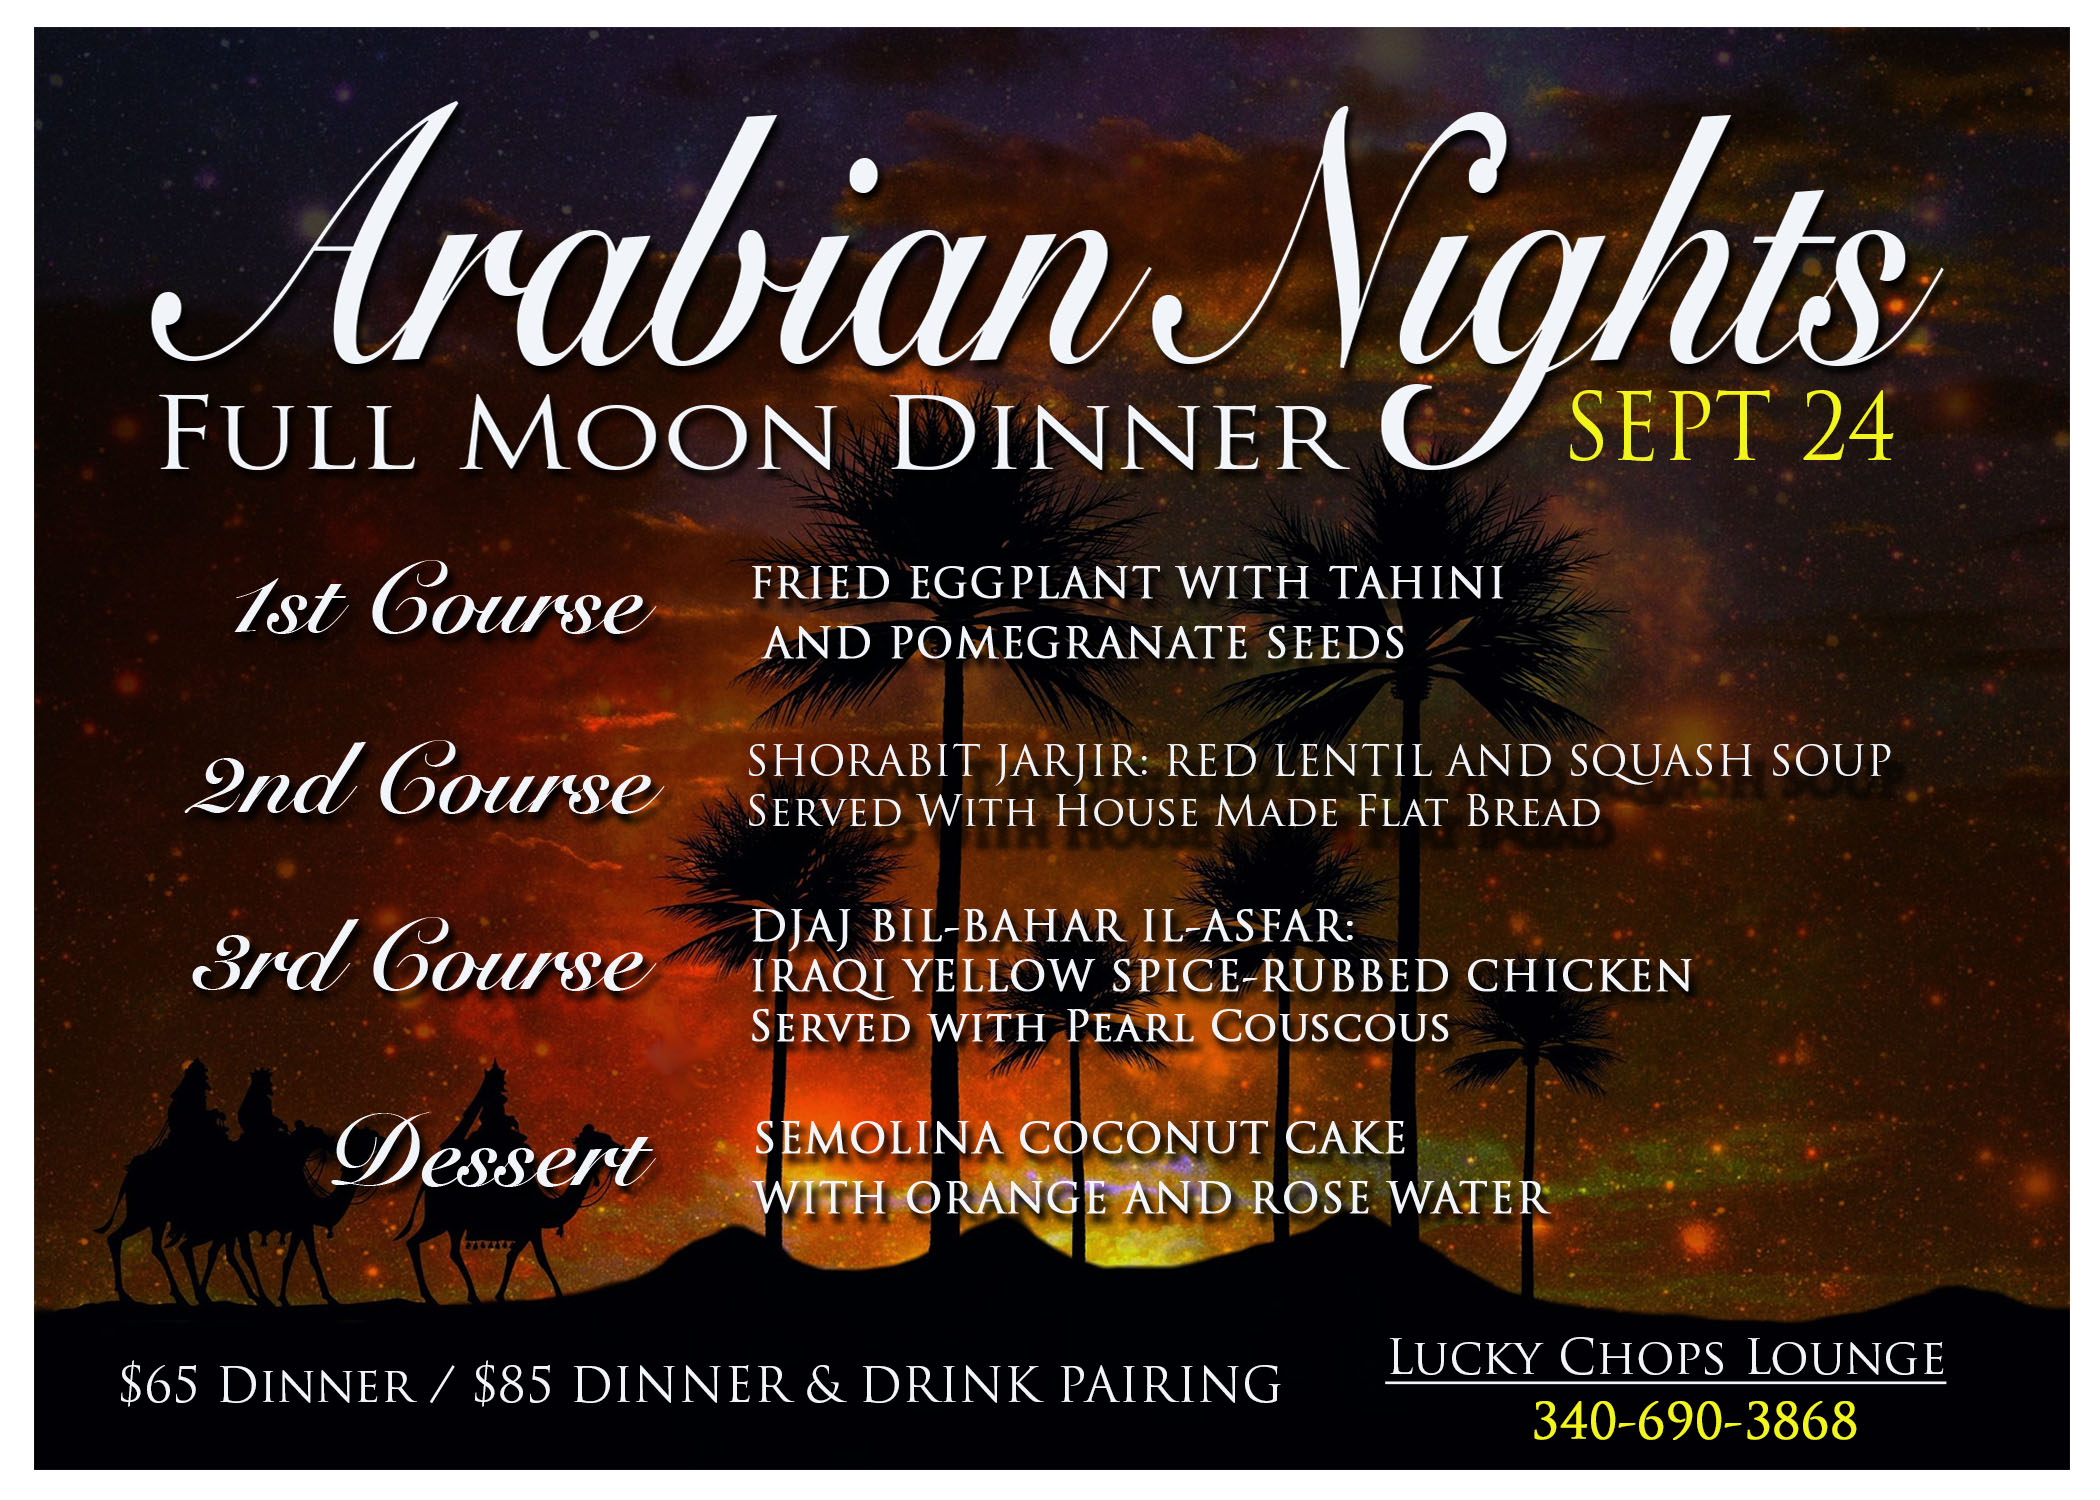 Arabian Nights menu